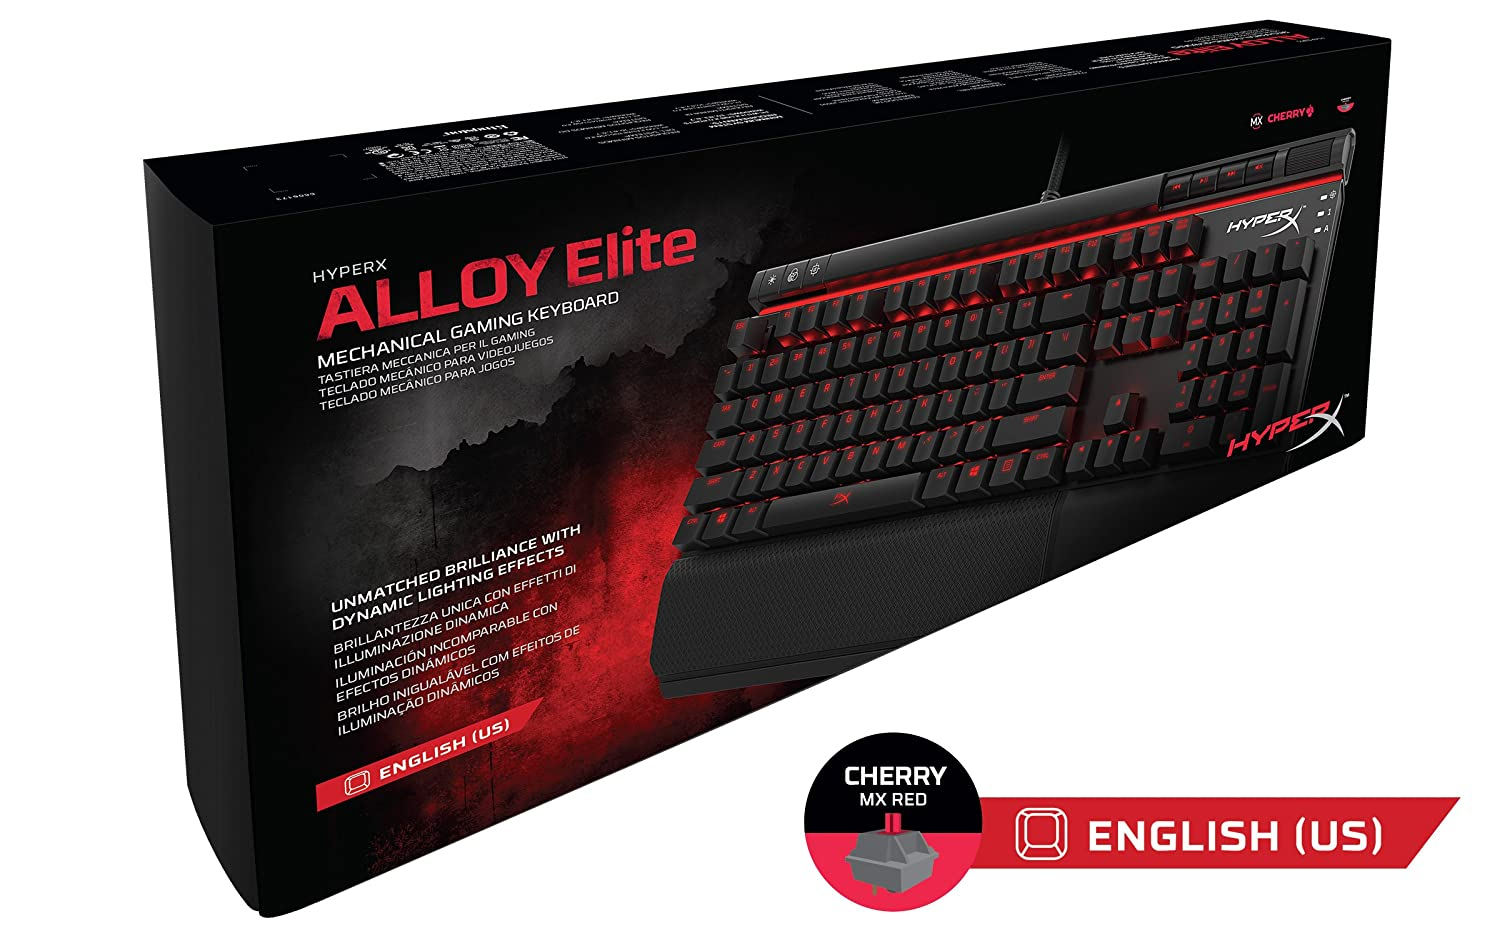 Alloy Elite Box